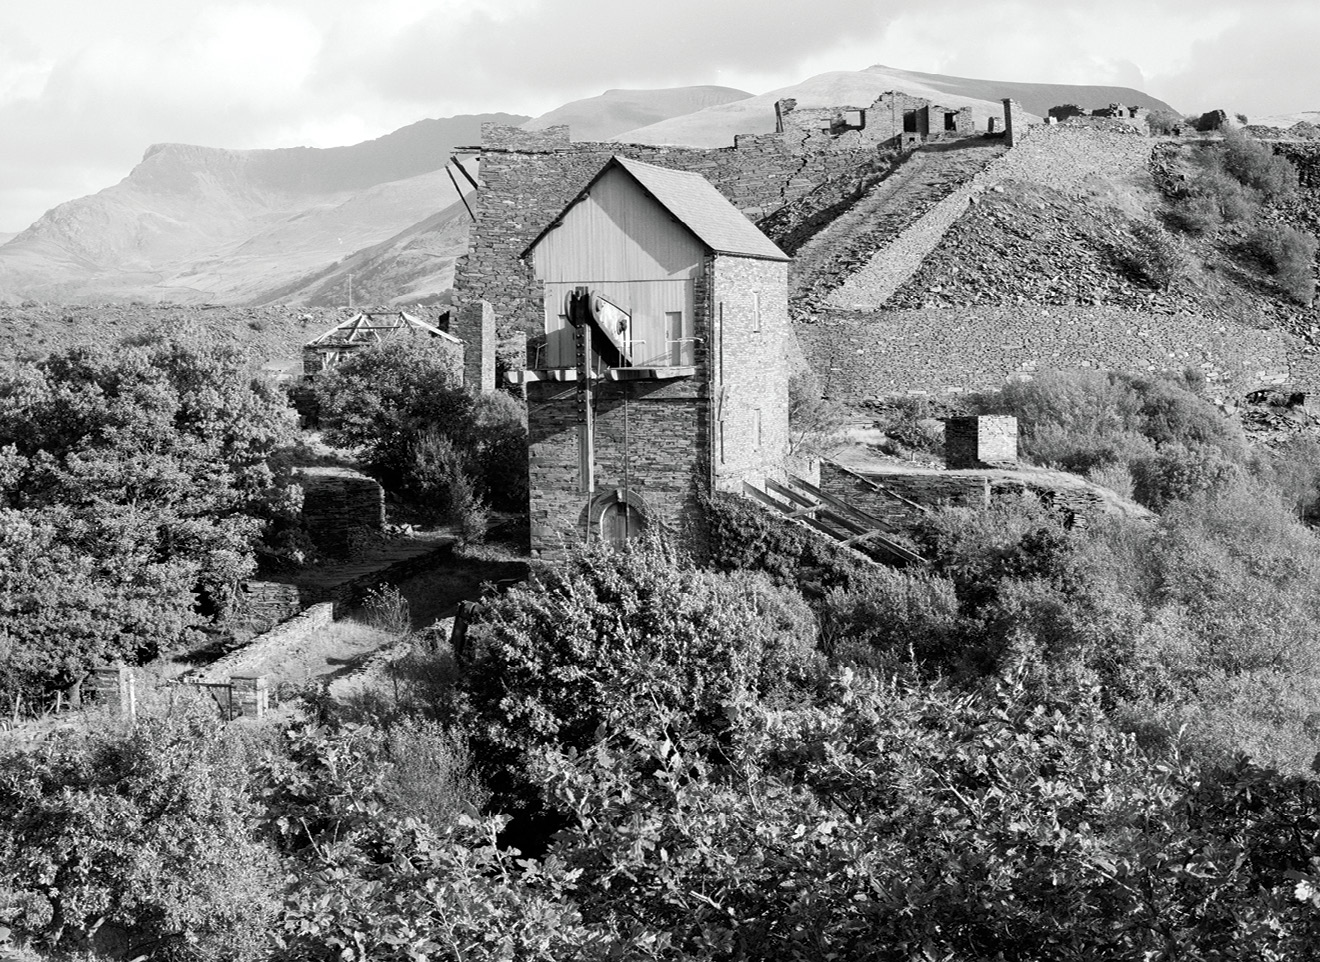 below Cornish beam engines are a distinctive feature of the Cornwall and West Devon Mining Landscapes World Heritage site, but they were also used for draining deep mines in the slate industry of north Wales. These archive images show the Nantlle Valley beam engine, one of the last such engines ever manufactured, made in 1906 by Holman Brothers one of Cornwall's most famous mining engineering companies.